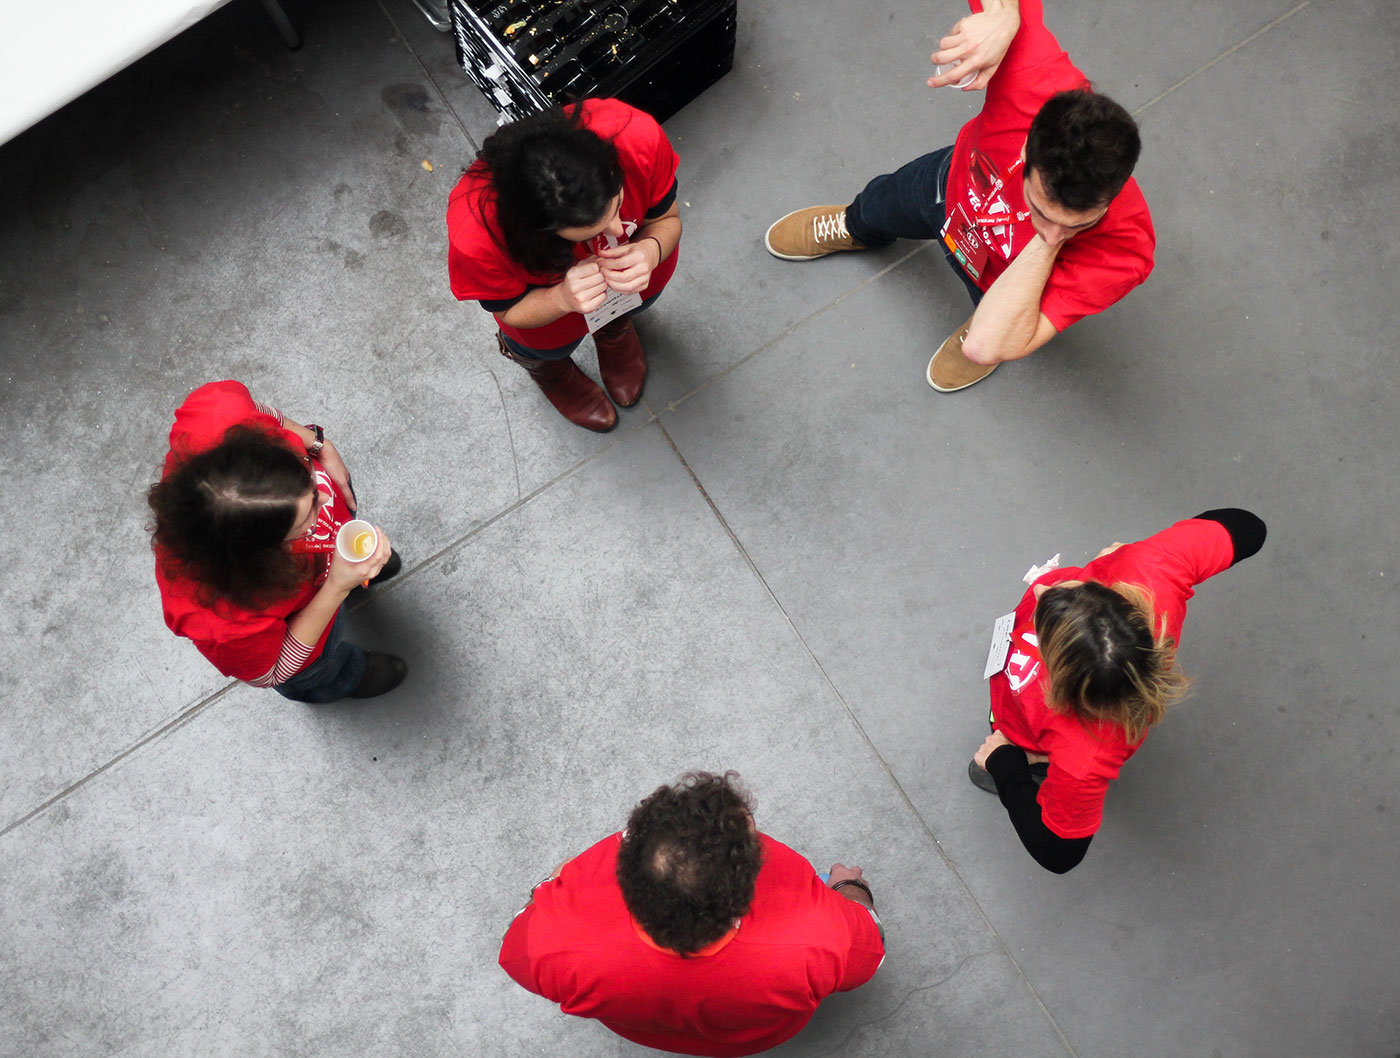 The Red Shirts